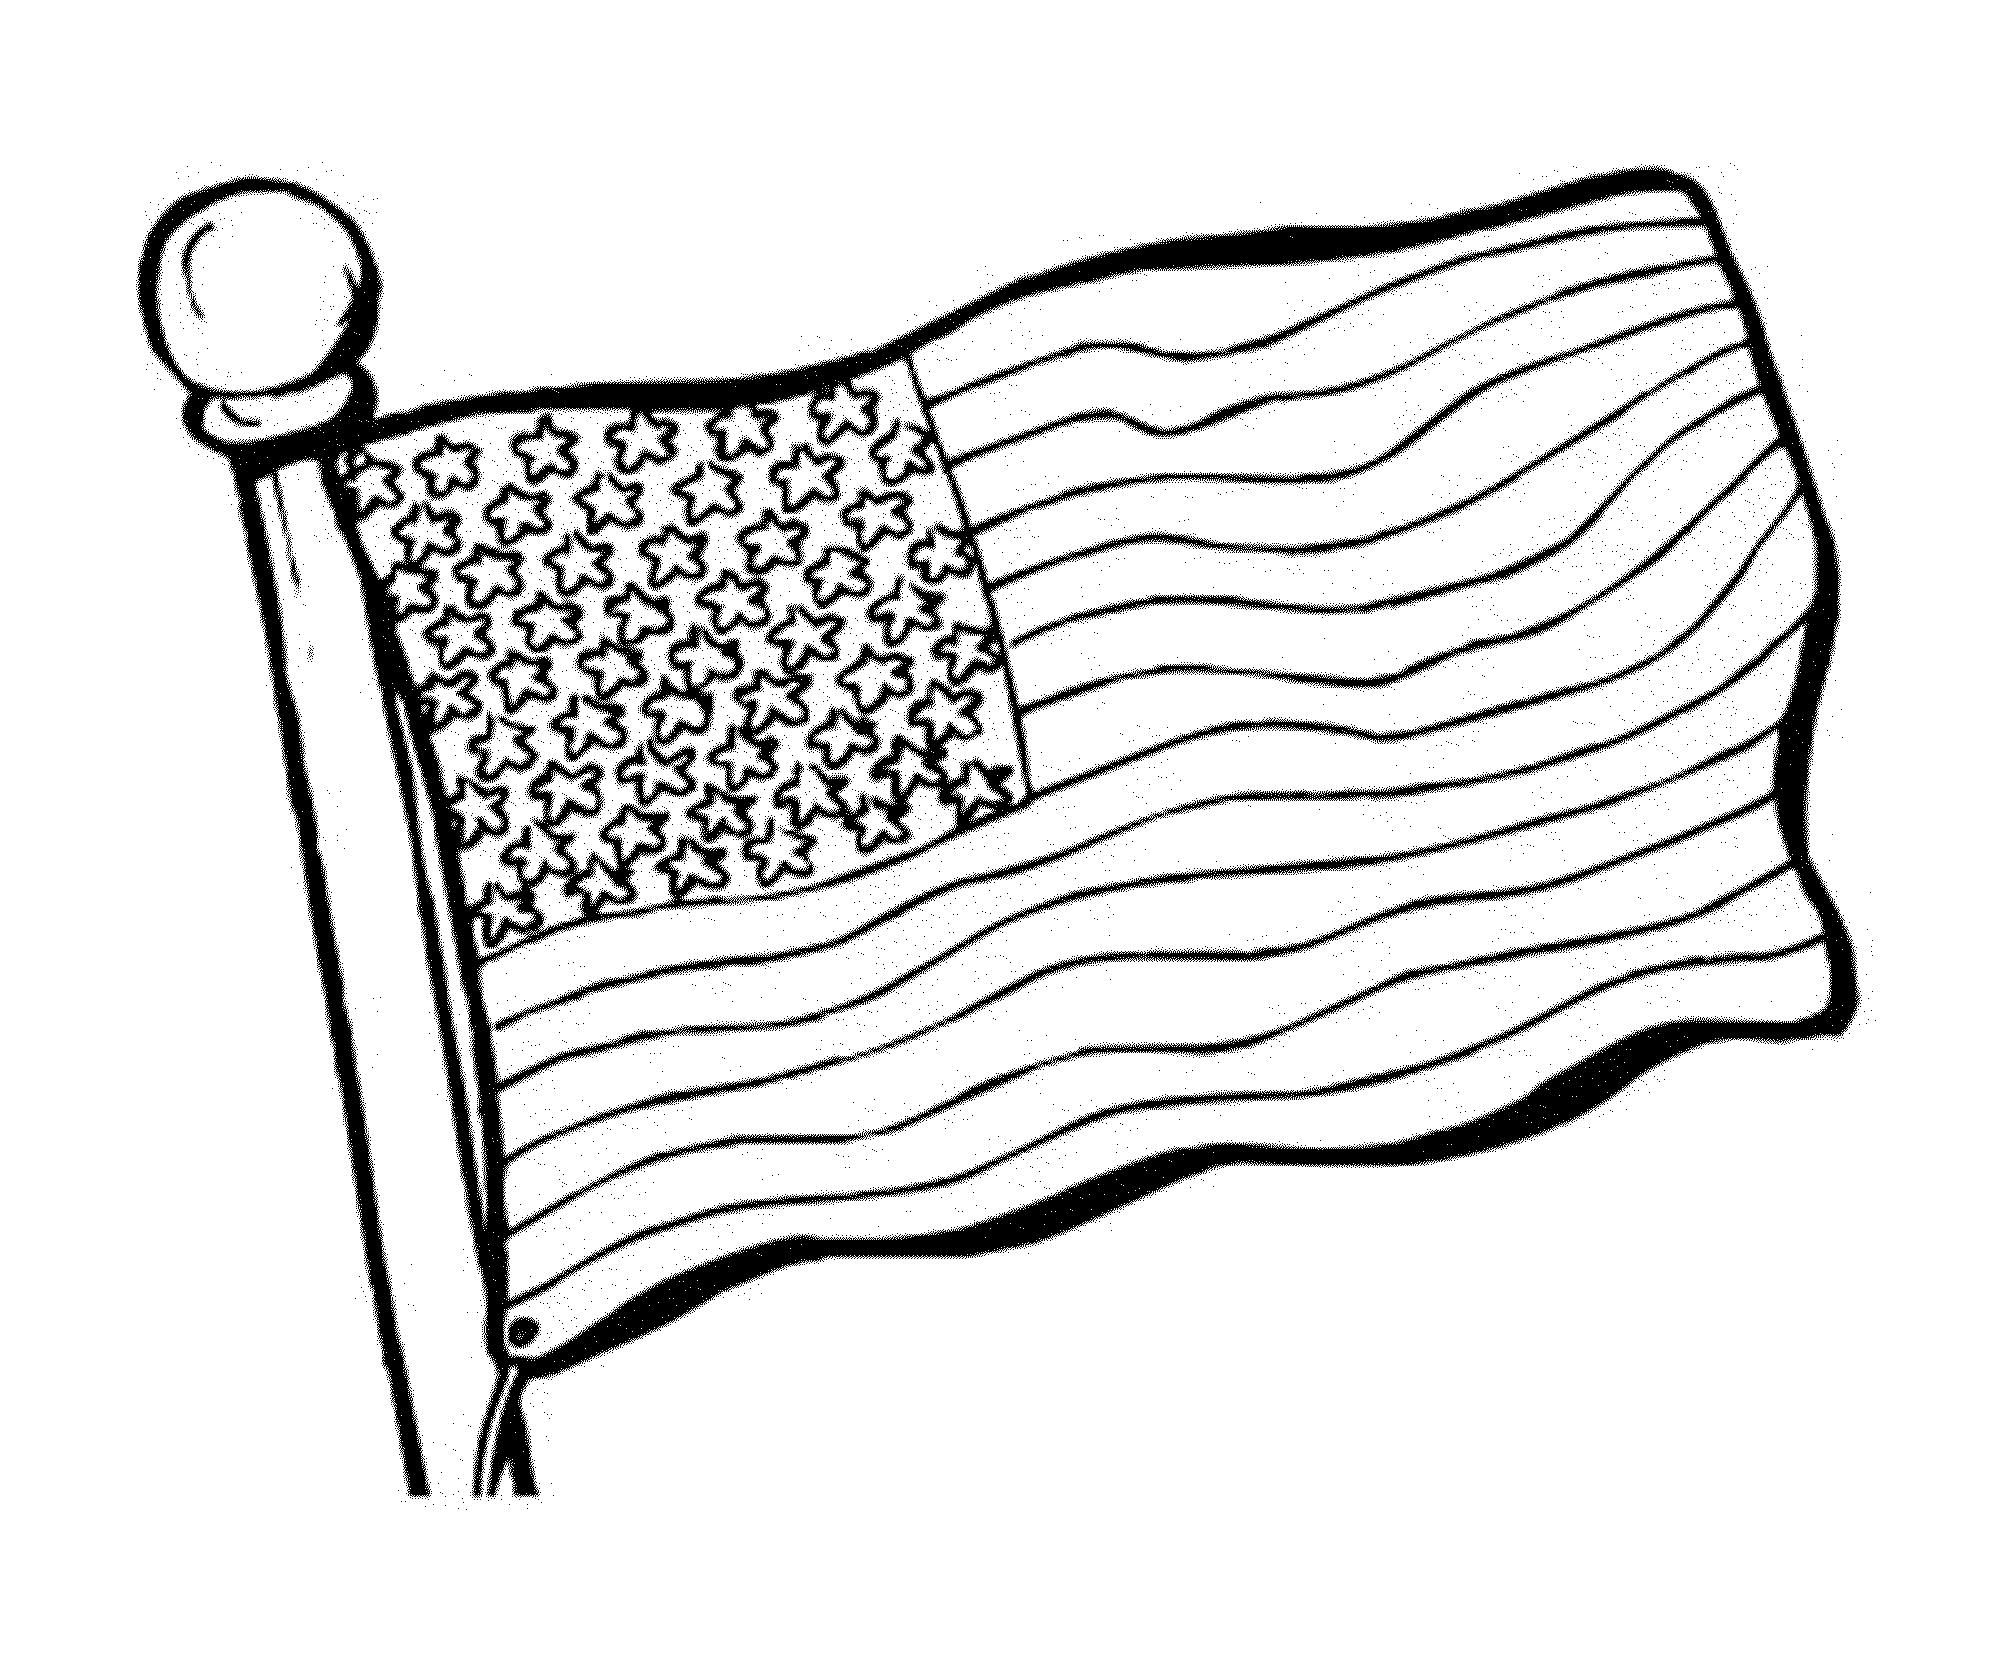 american flag coloring book get this american flag coloring pages to print for kids american flag book coloring